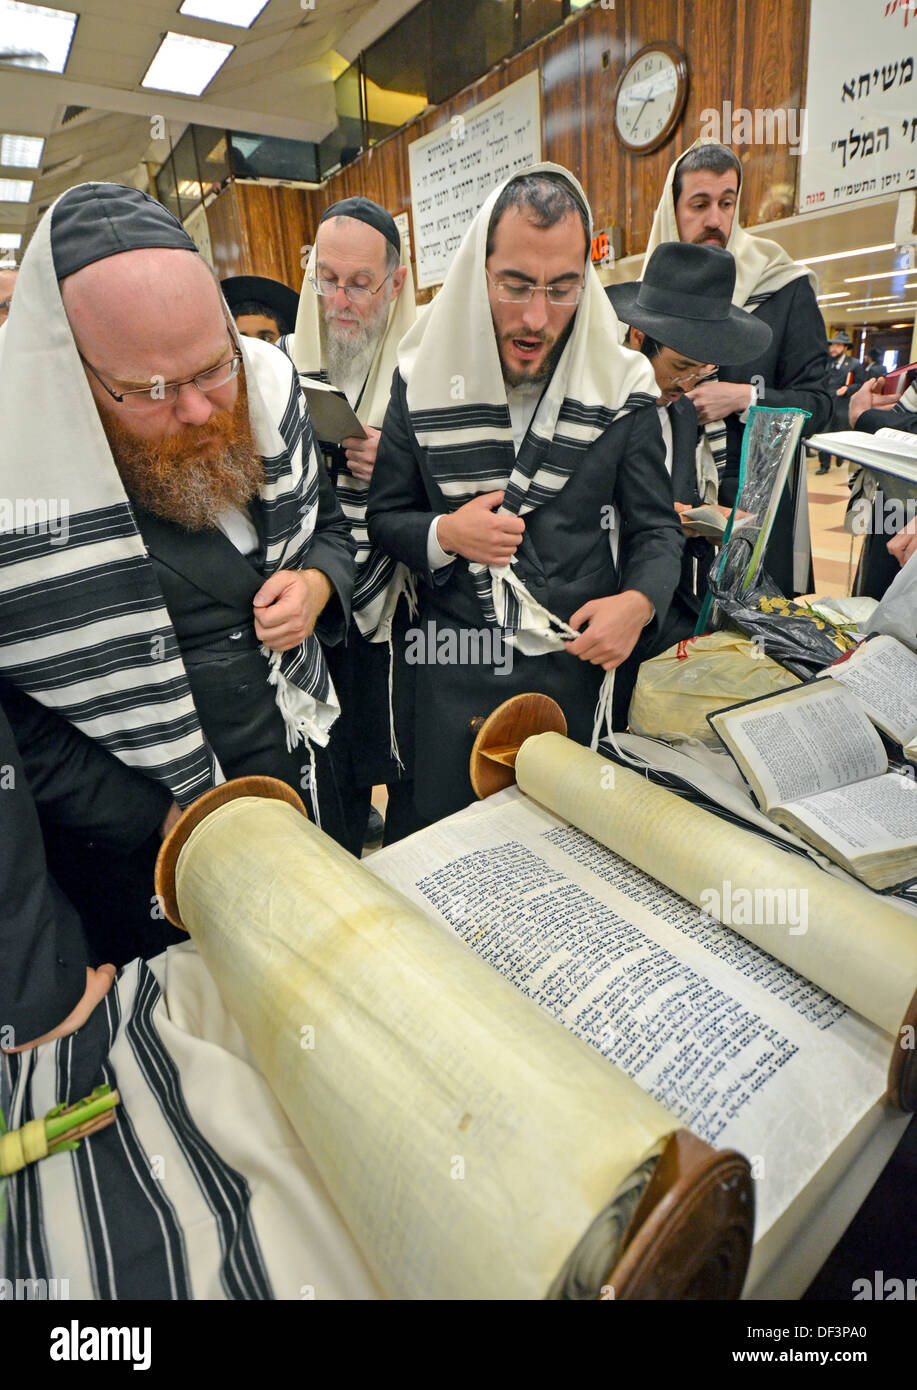 Reading from a Torah scroll at Sukkot morning services at Lubavitch headquarters in Brooklyn, New York. - Stock Image